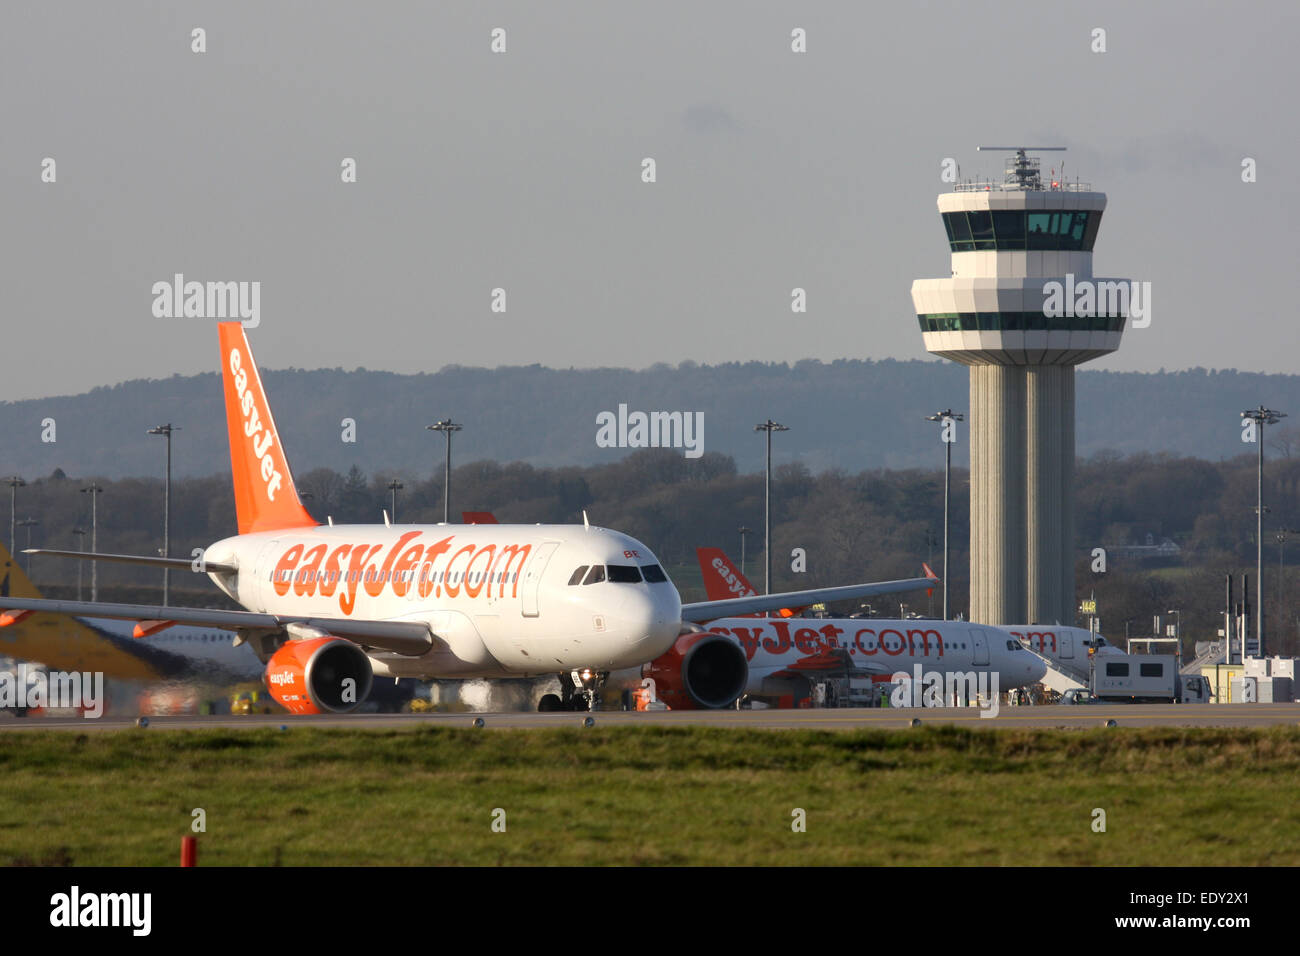 EASYJET AT LGW GATWICK AIRPORT - Stock Image